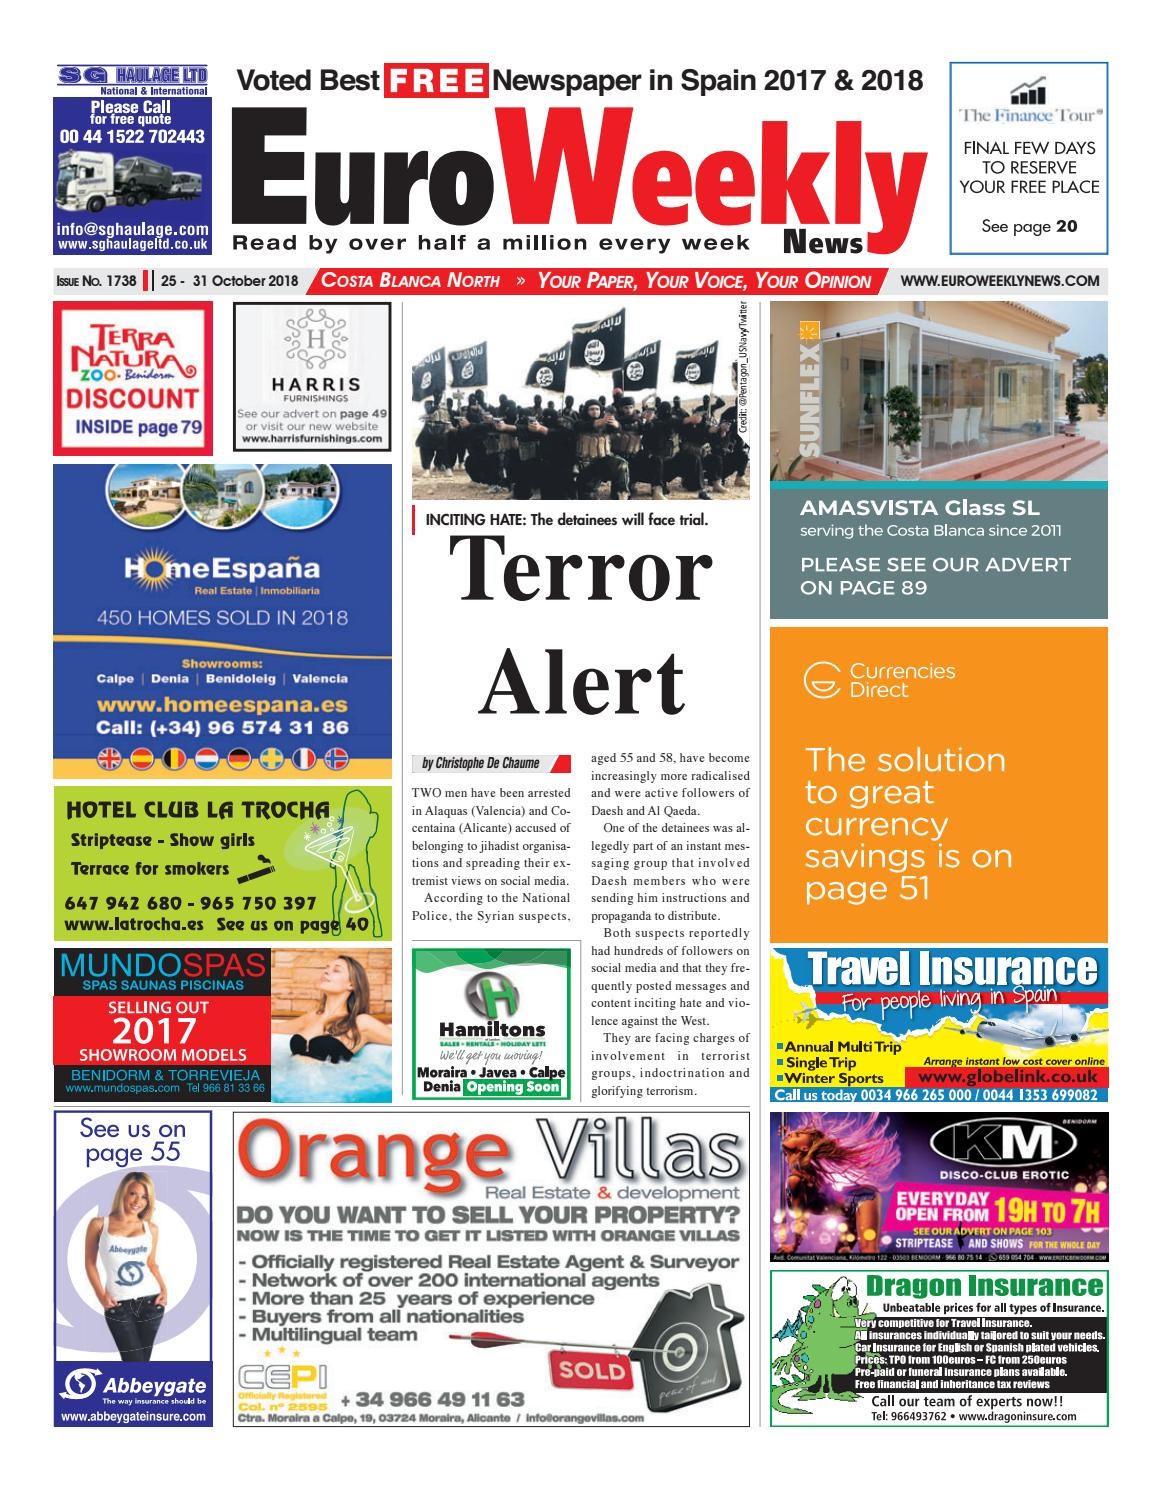 Cuisine Grenade Leroy Merlin Euro Weekly News Costa Blanca North October October 25 31 2018